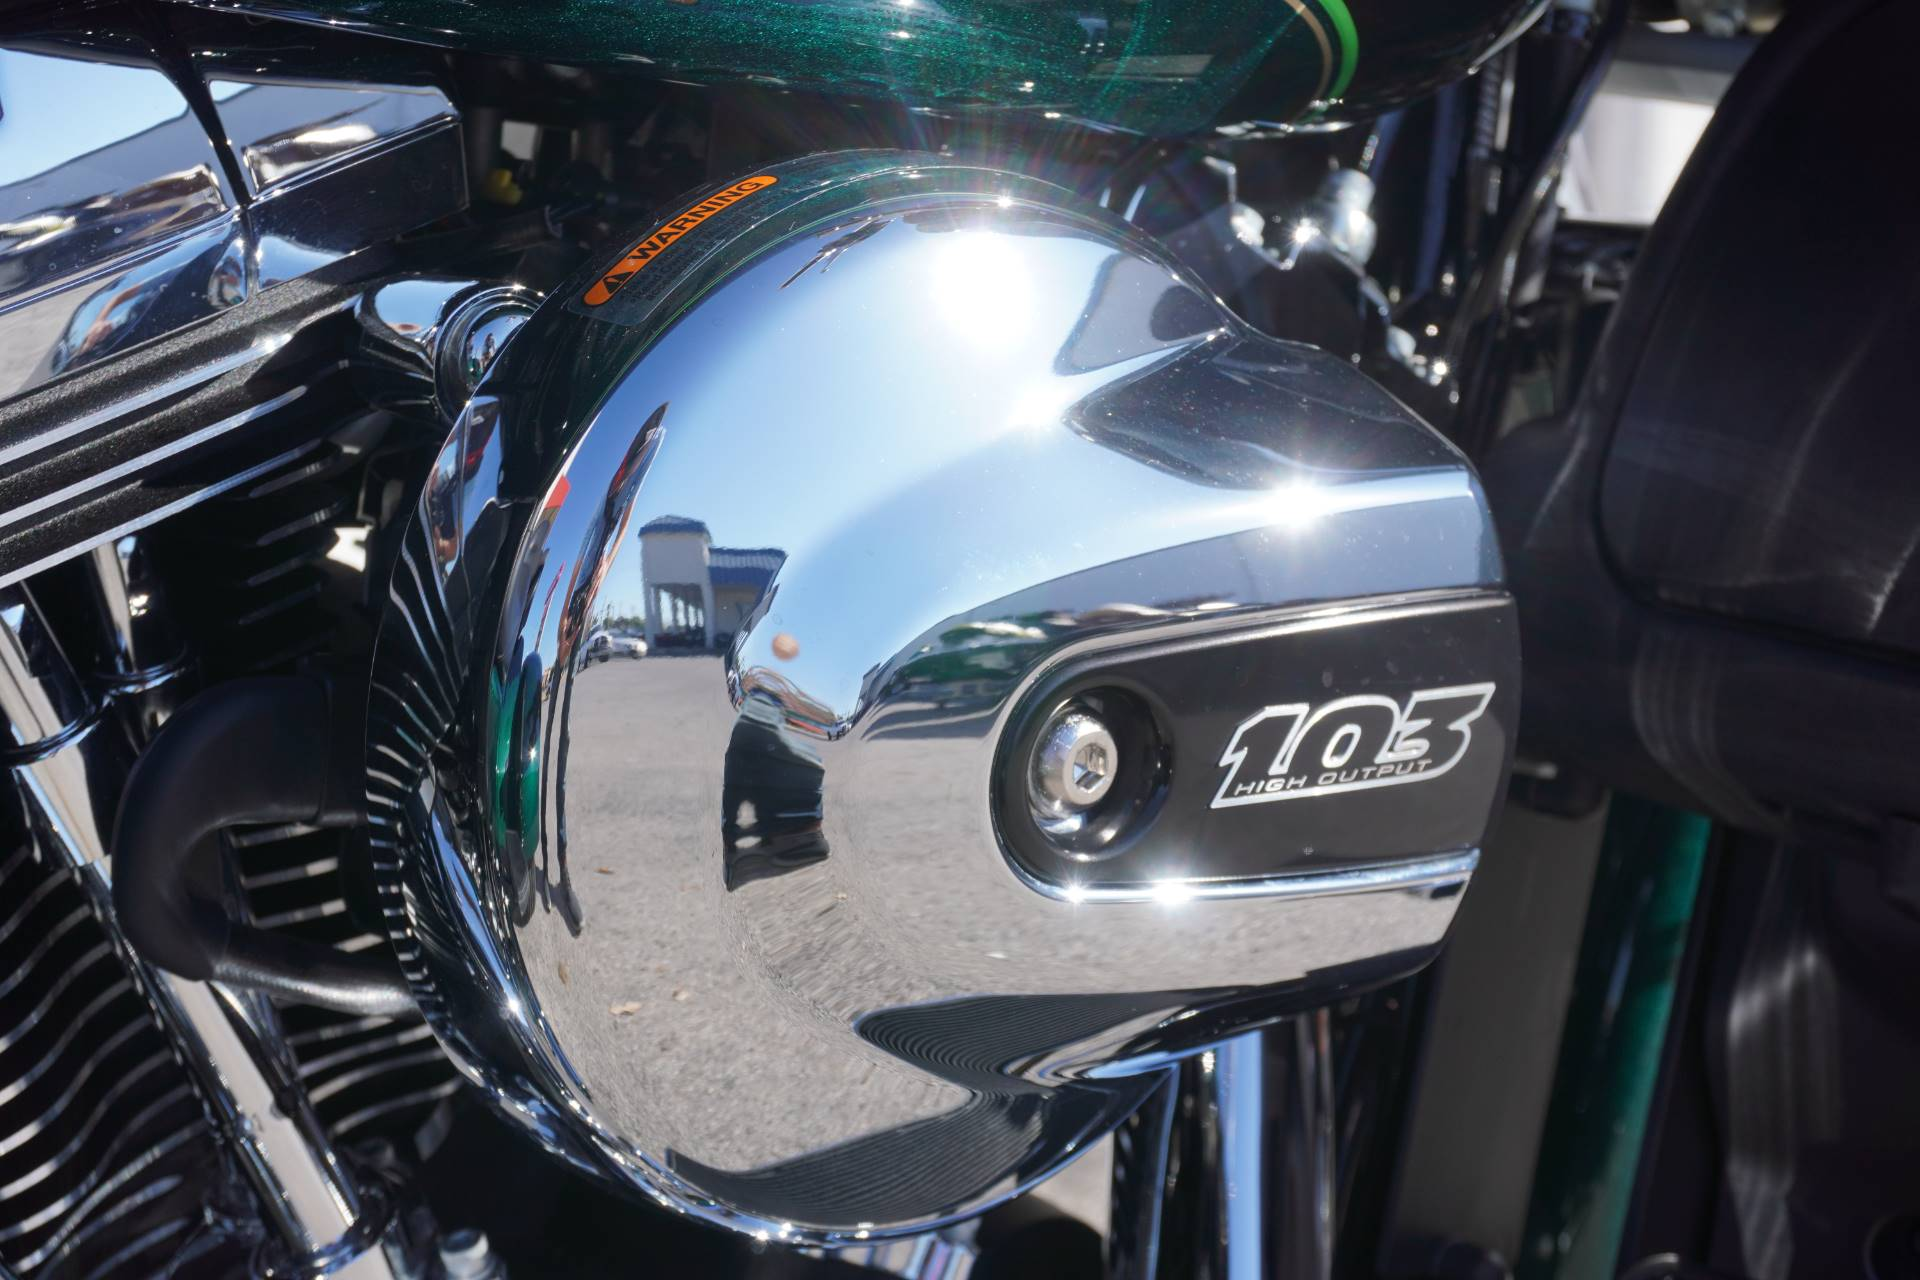 2016 Harley-Davidson Tri Glide® Ultra in Tulsa, Oklahoma - Photo 6